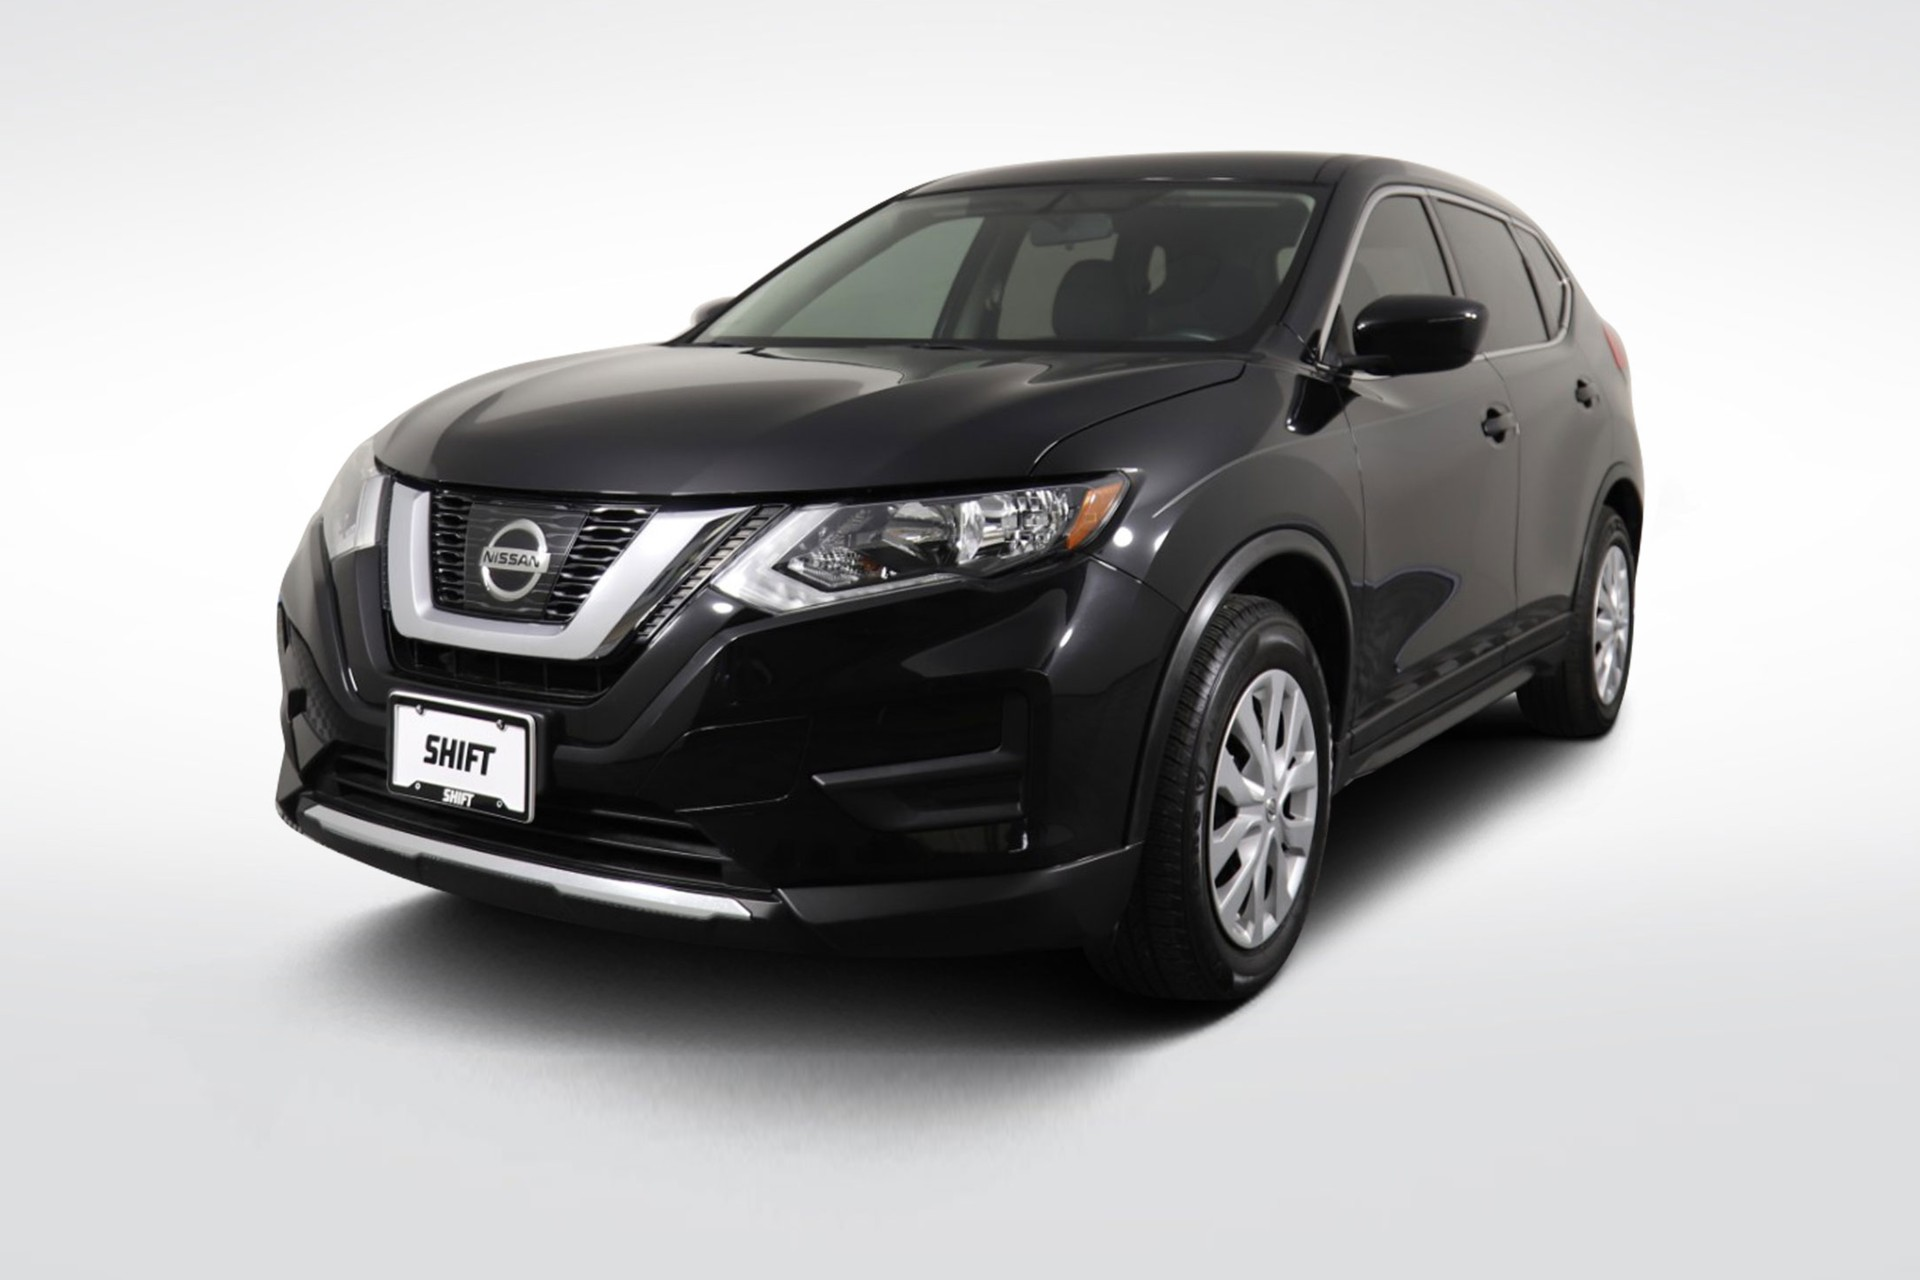 2017 Nissan Rogue S (from $18,250)